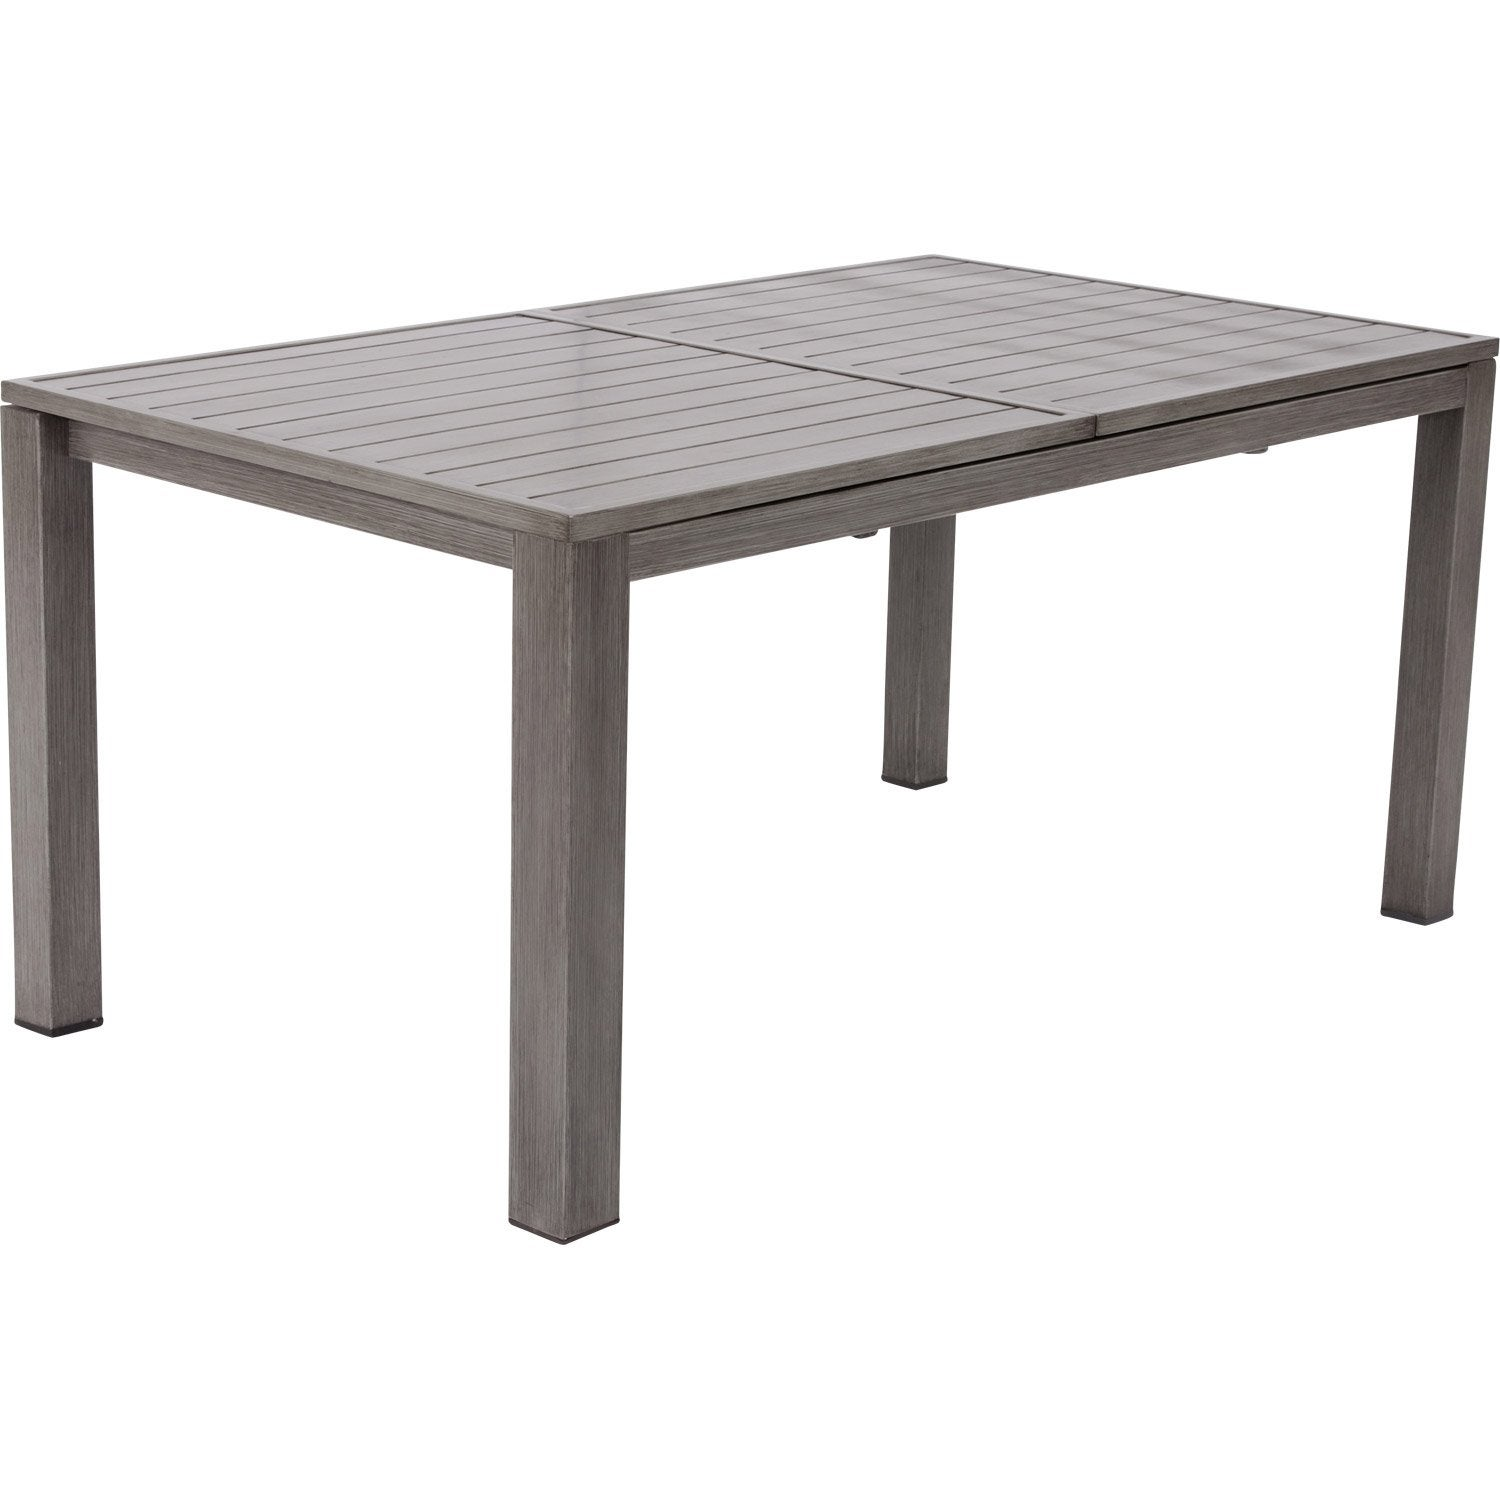 Table De Jardin NATERIAL Antibes Rectangulaire Gris 6/8